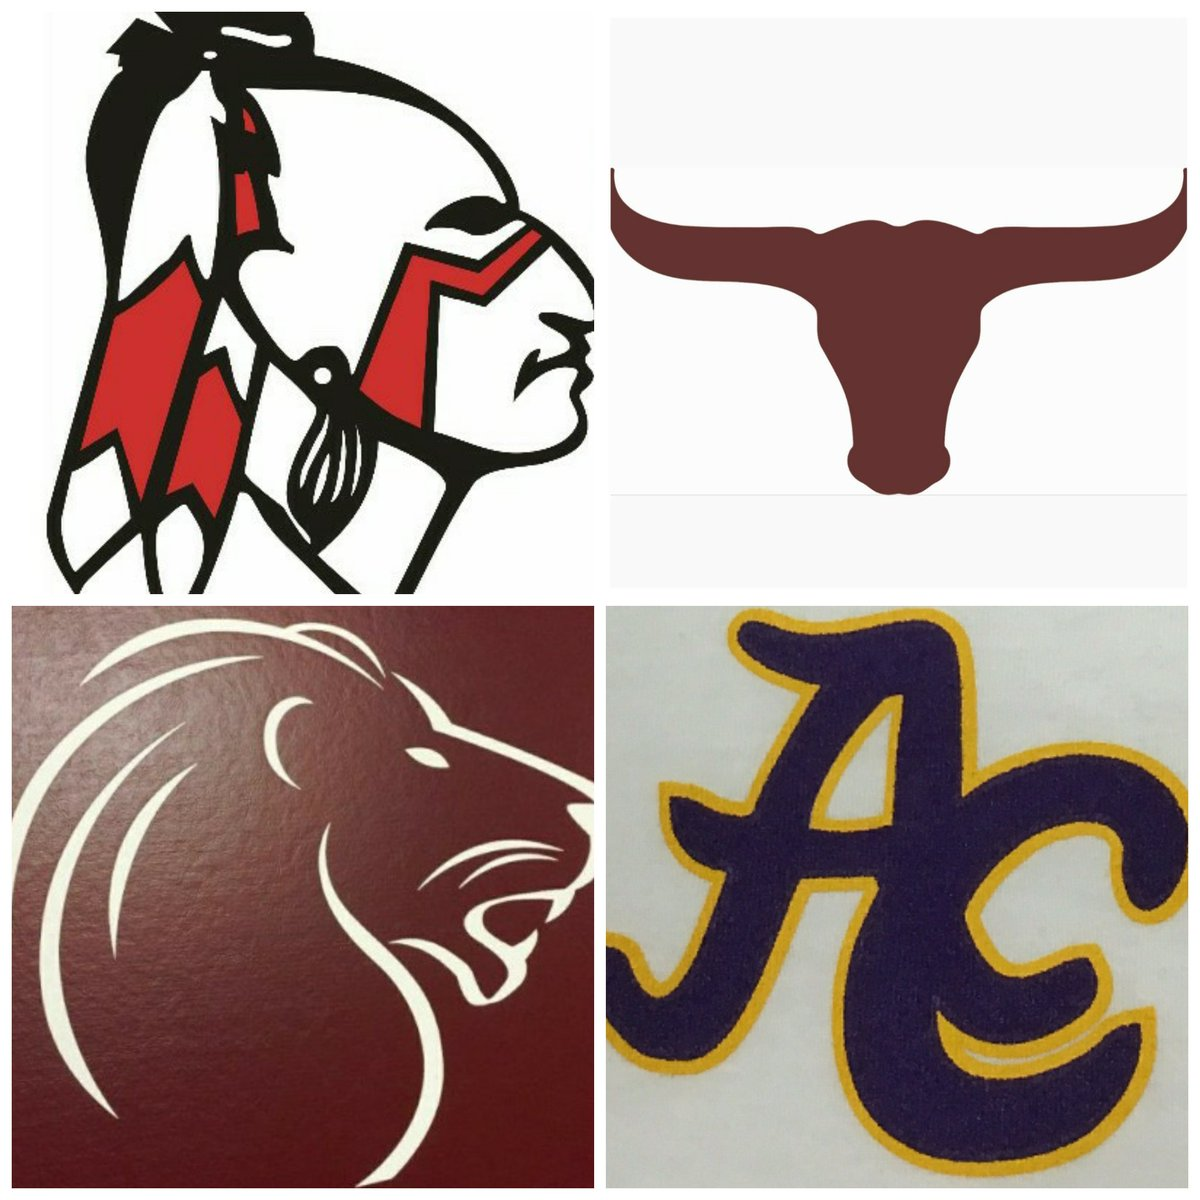 Alcorn central clipart picture freeuse stock AC Bears Basketball (@ACbearsbball) | Twitter picture freeuse stock